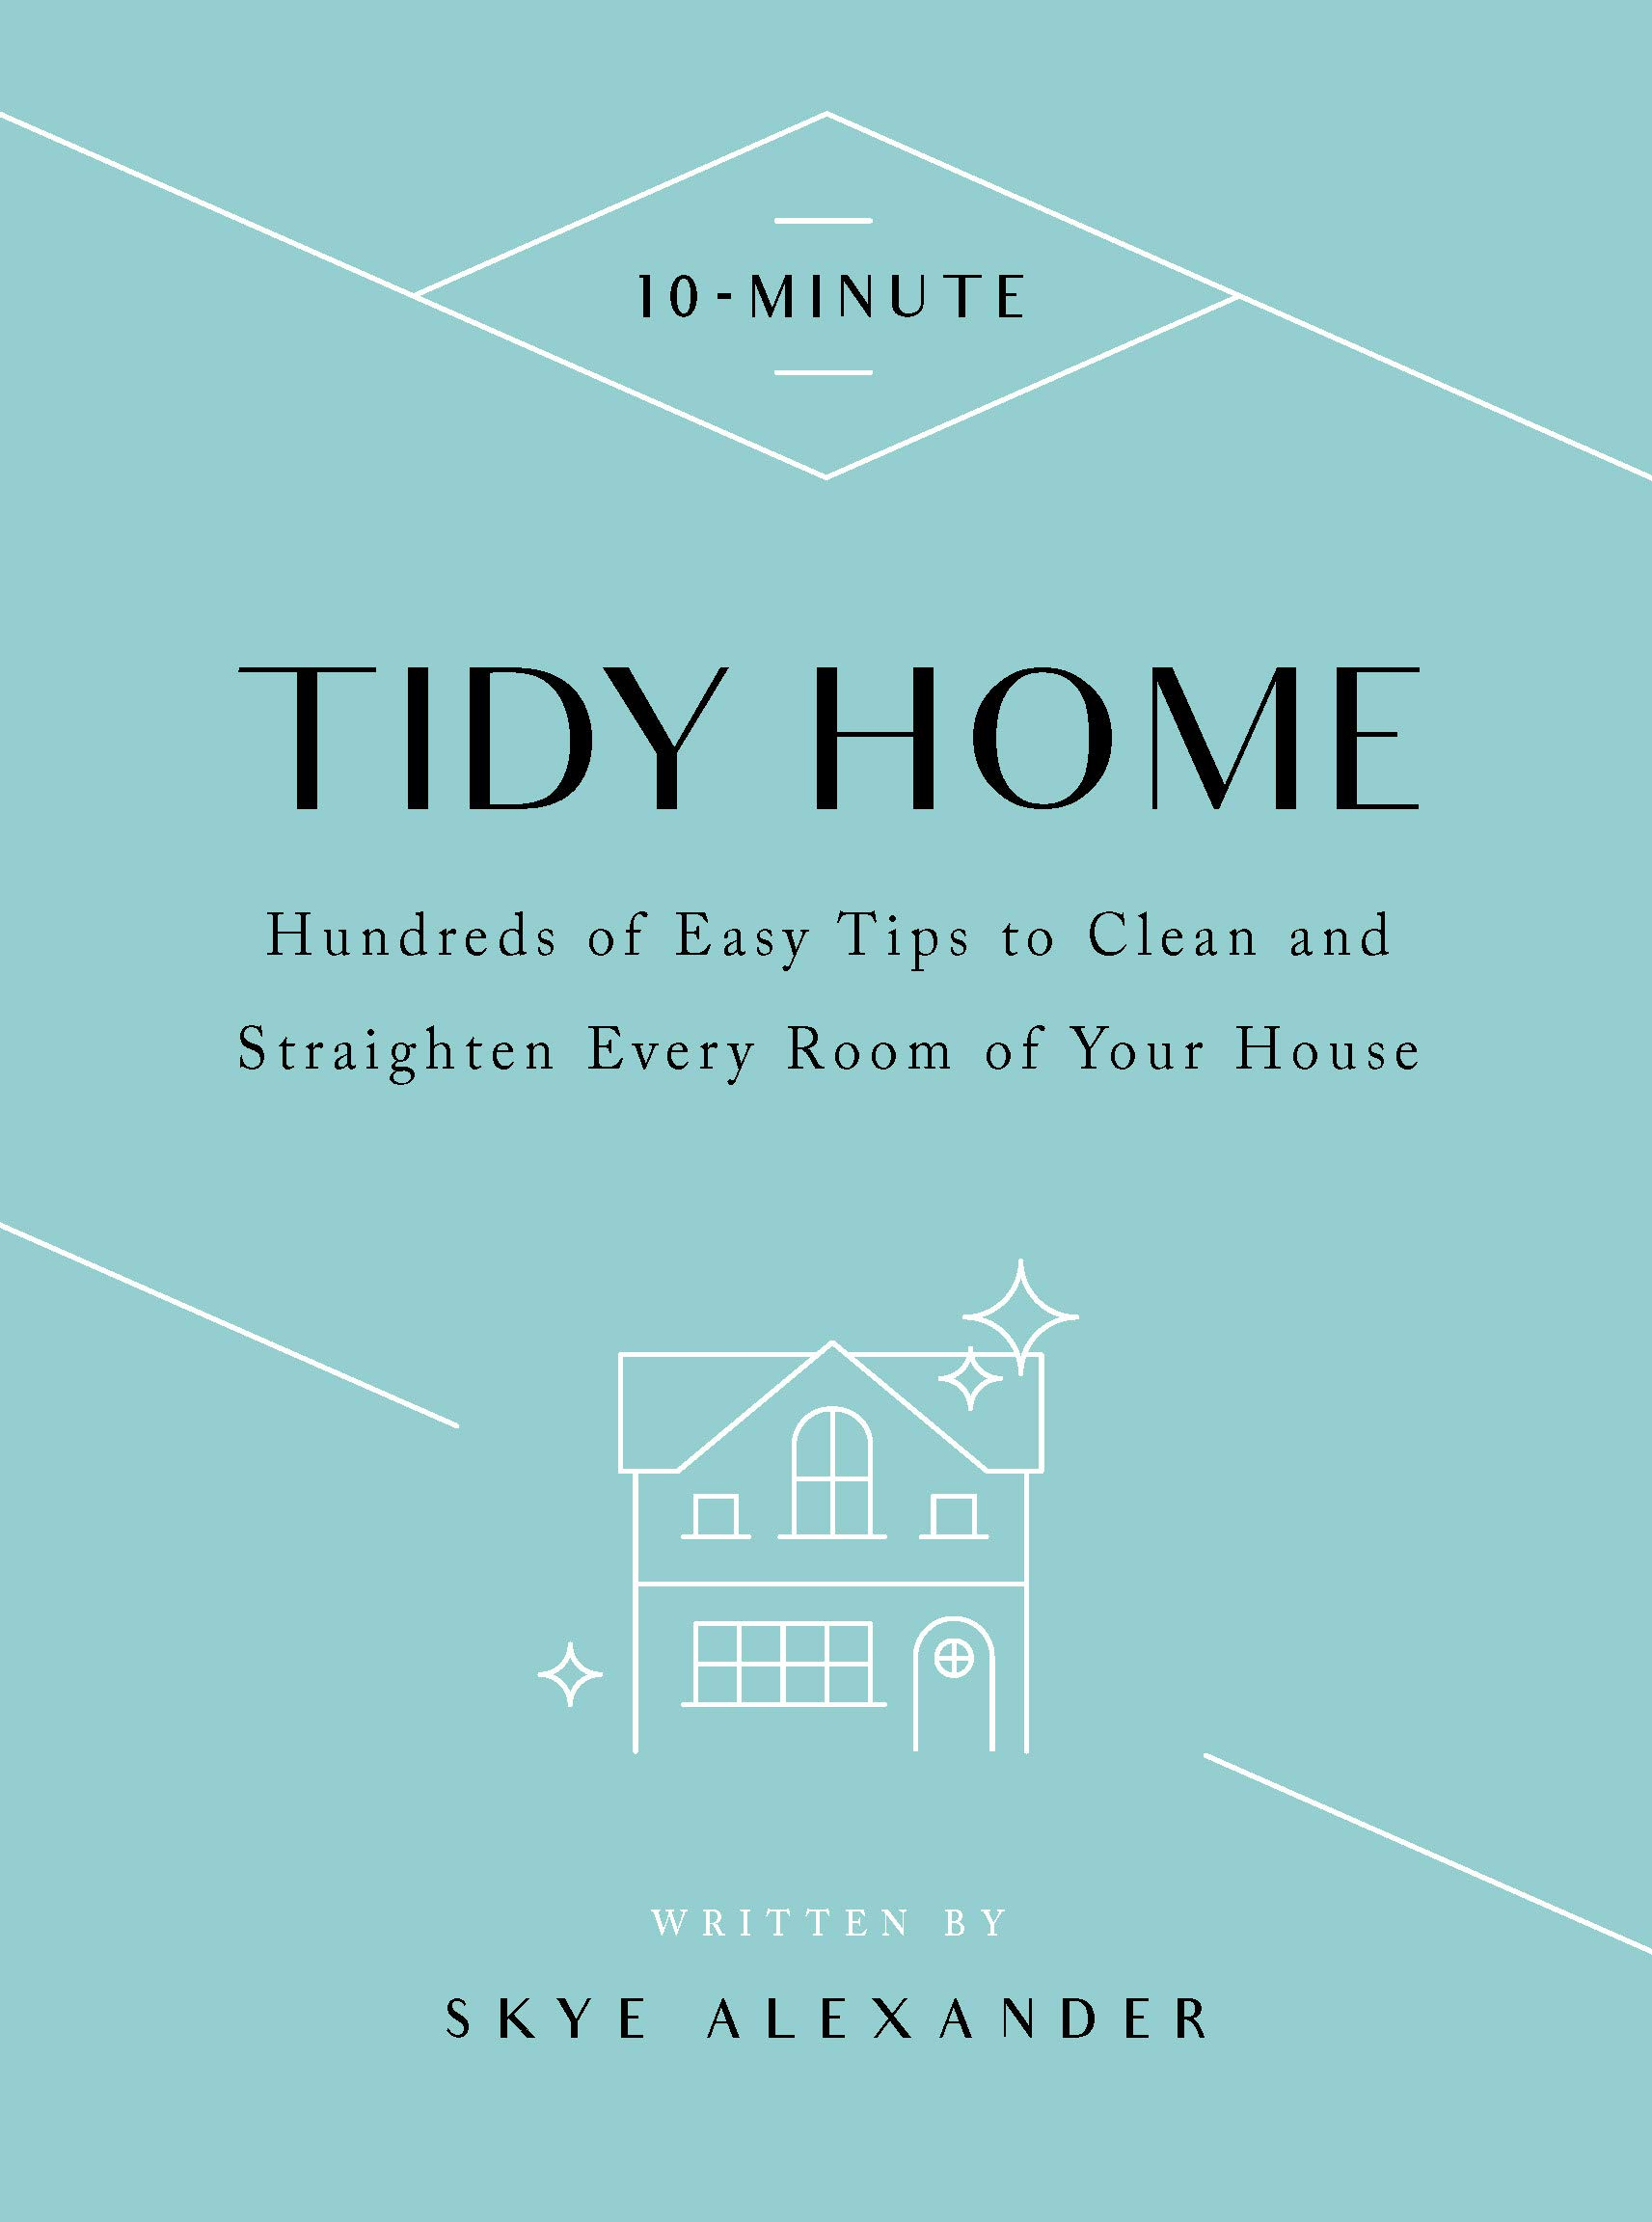 10-Minute Tidy Home: Hundreds of Easy Tips to Straighten and